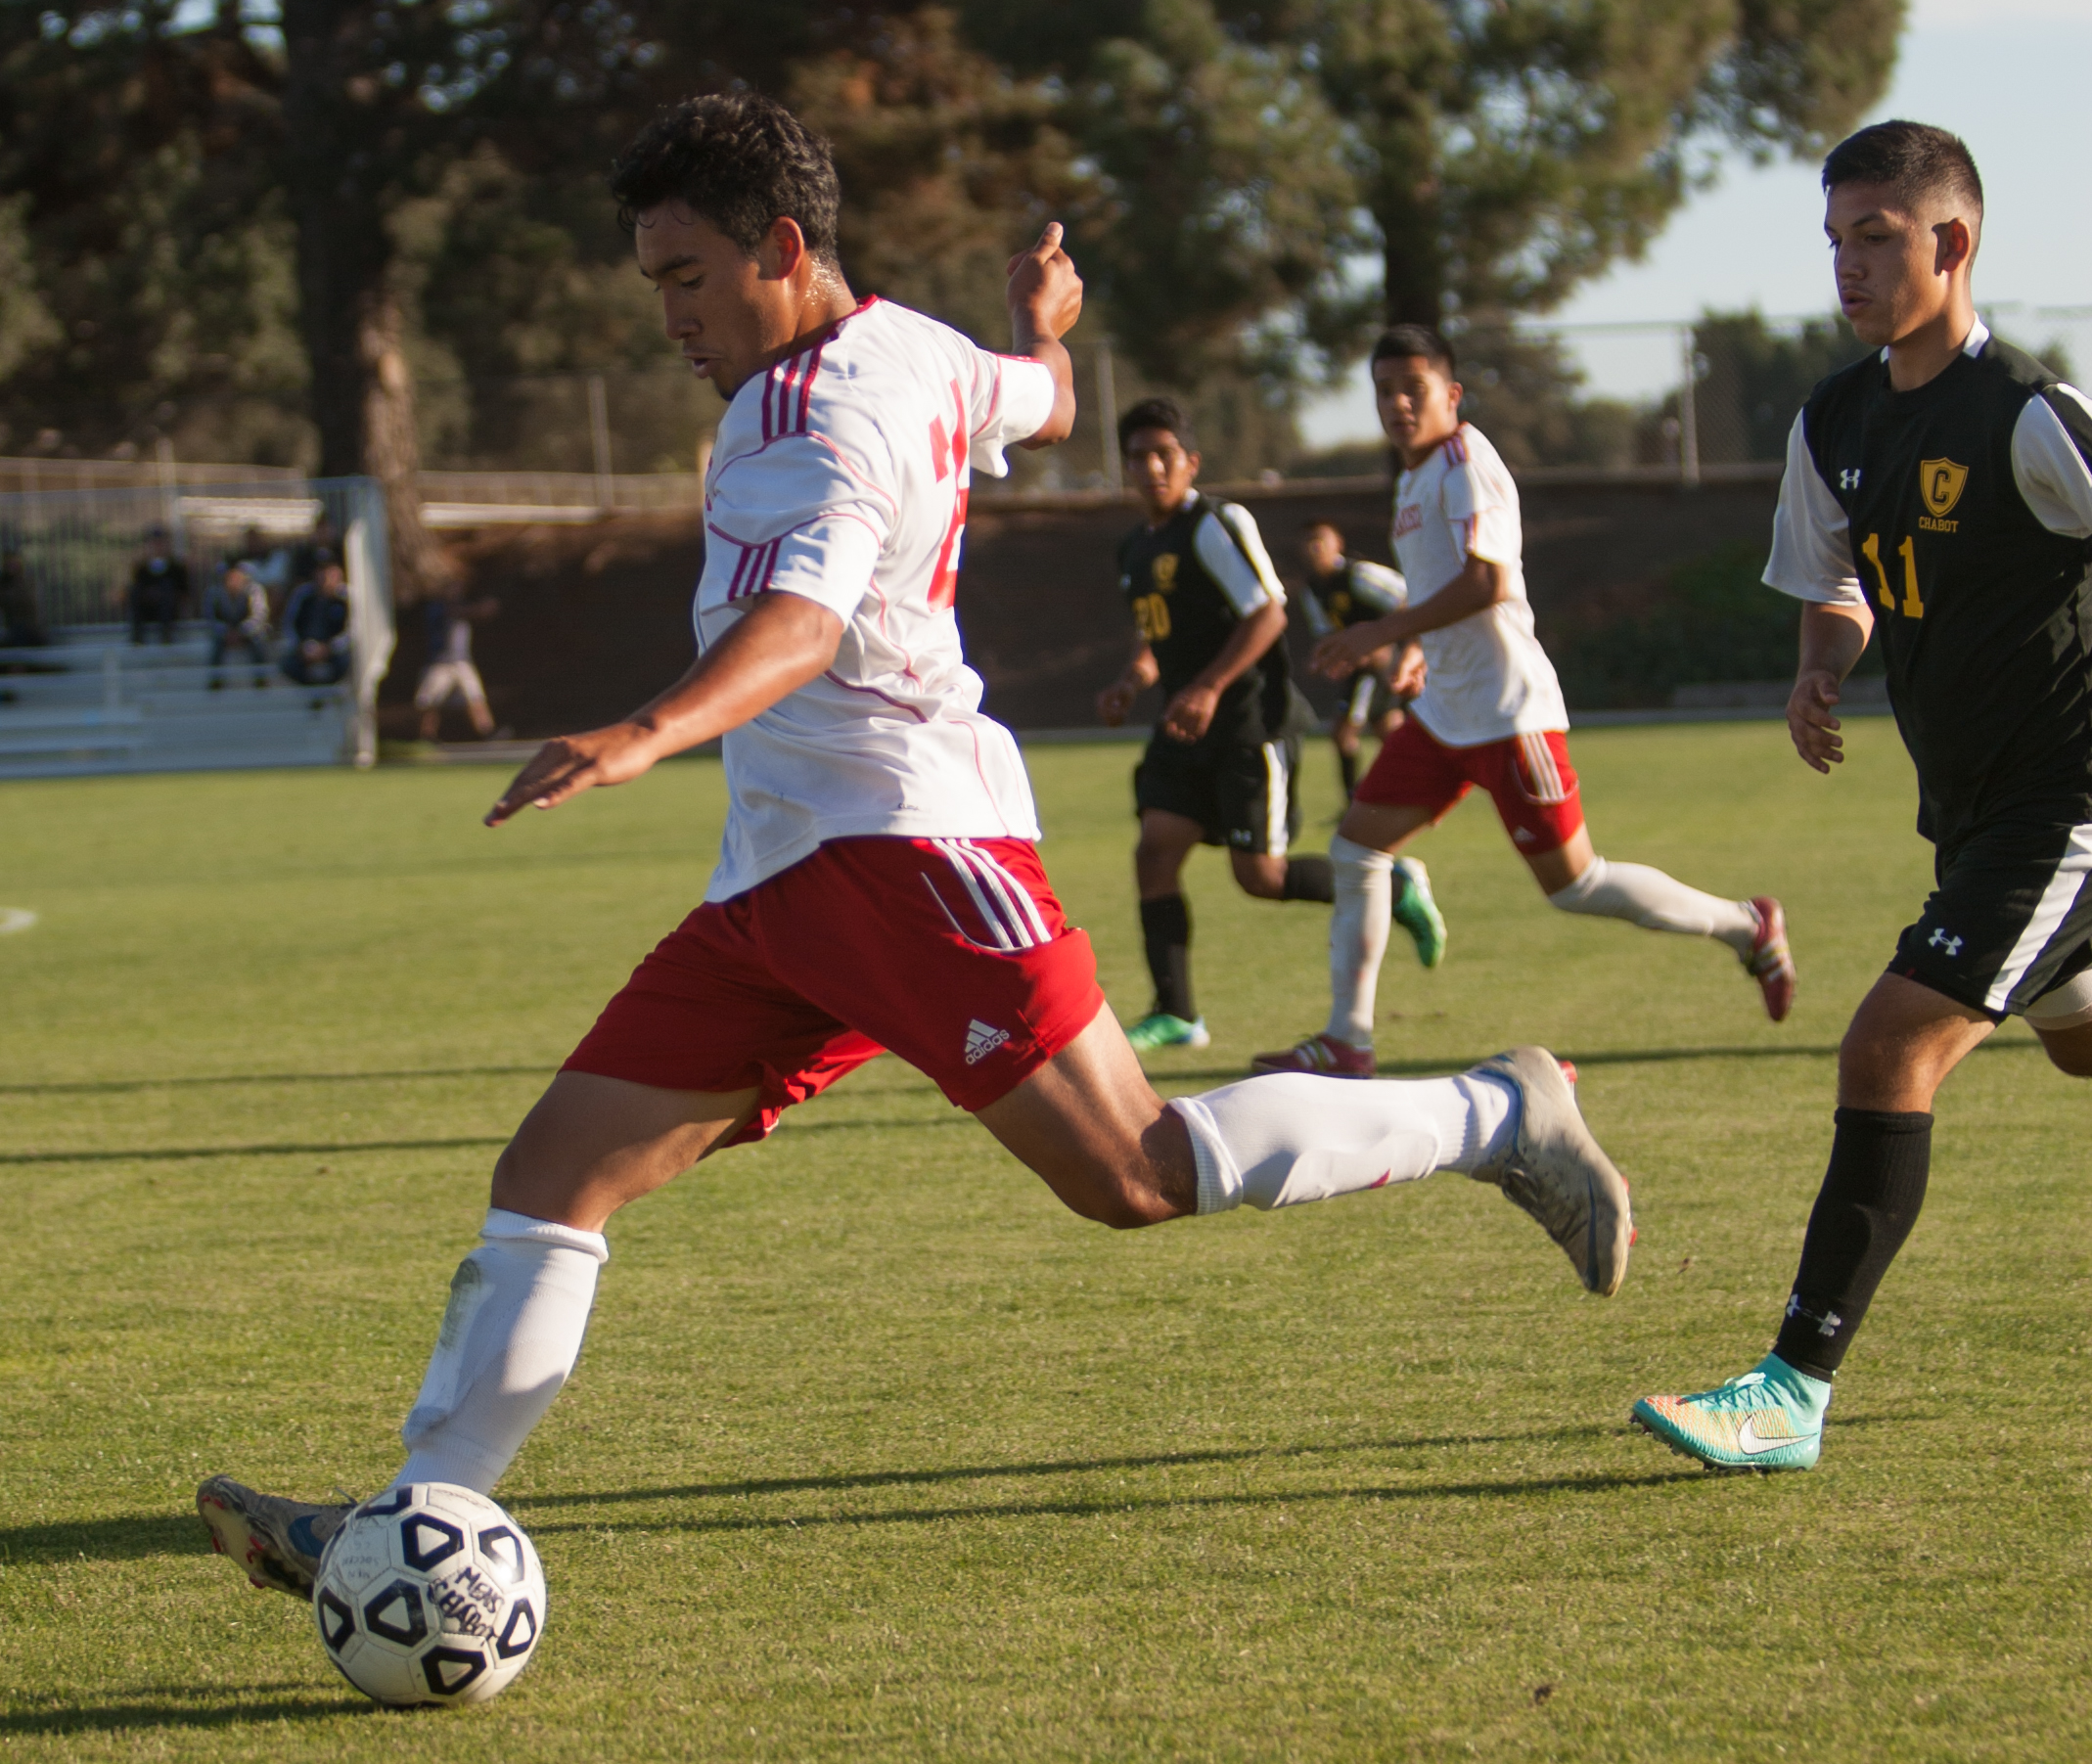 City College Rams soccer player strikes the ball. (Photo by Khaled Sayed)